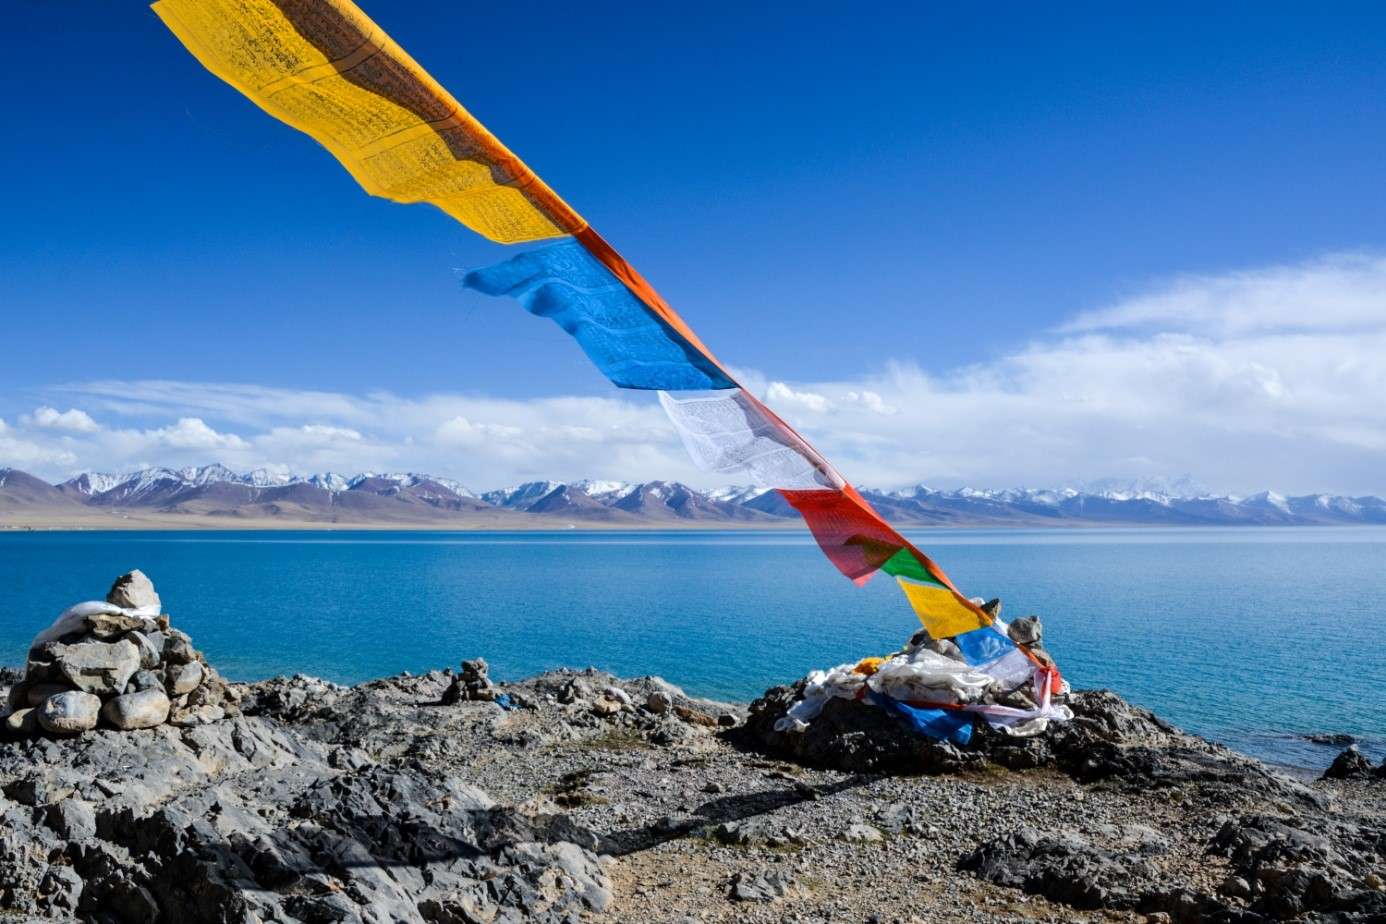 Tibet_Everest BC_Namtso Lake_Mai 2016_5